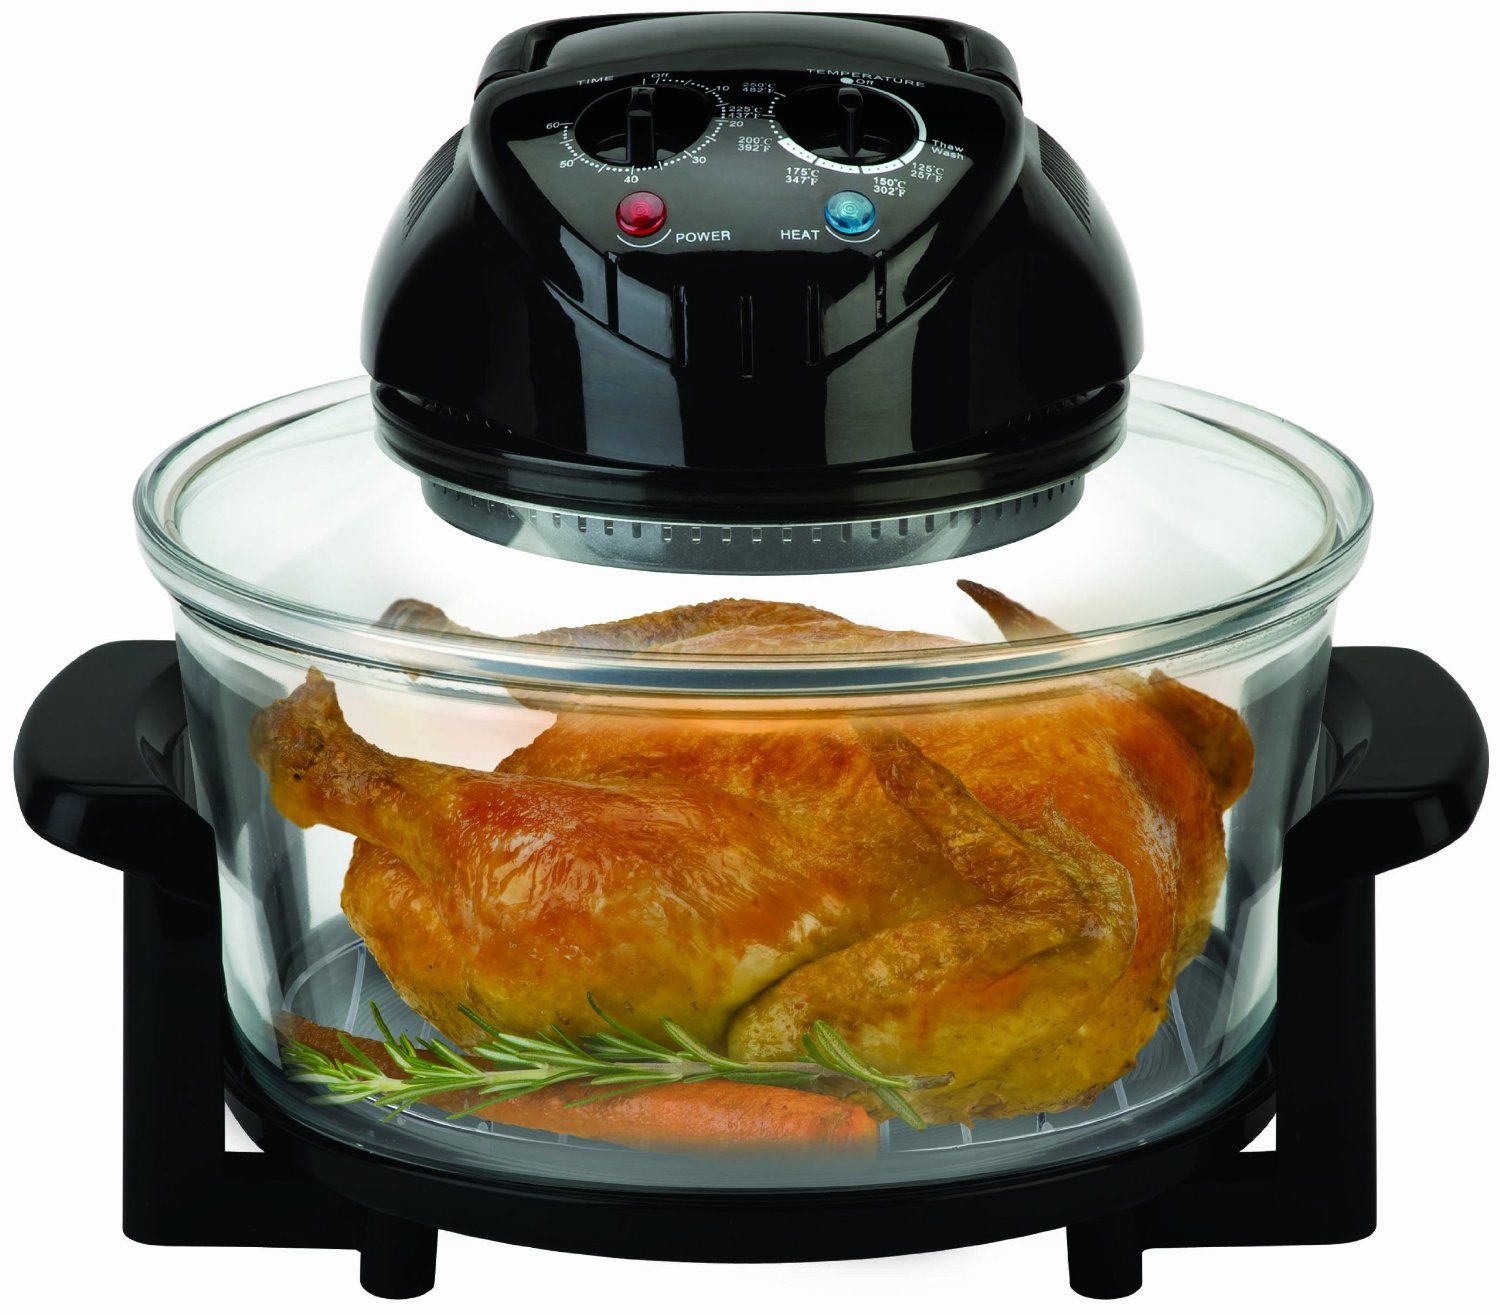 Big Boss Rapid Wave Oven Review Airfryers Net